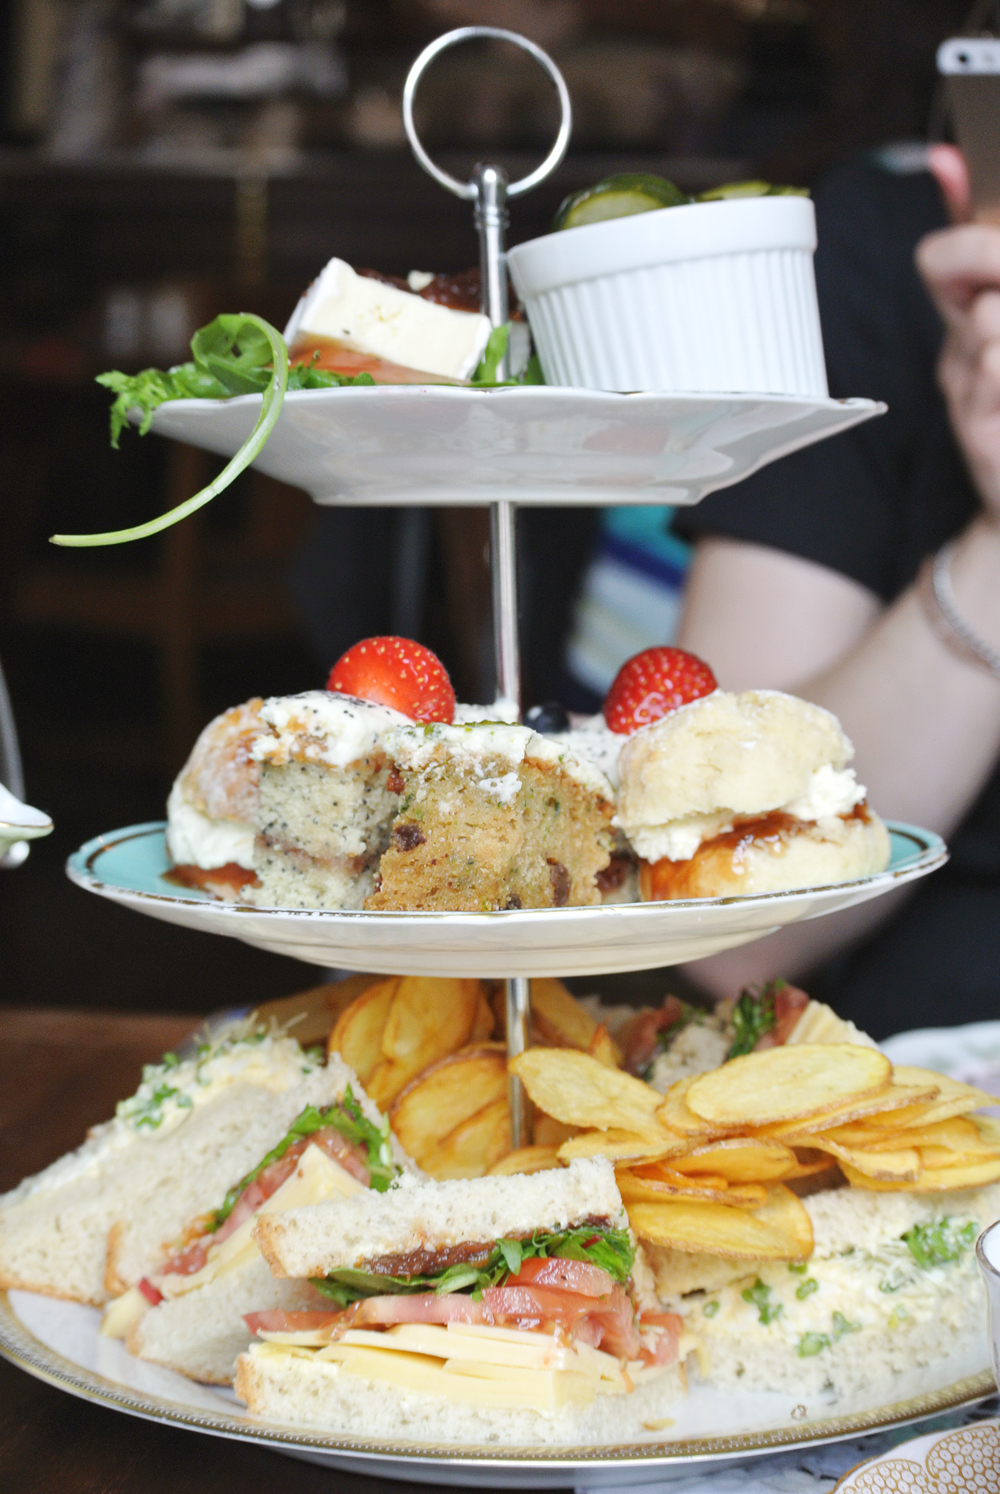 Afternoon Tea at the Tearooms at the Butterfly and the Pig